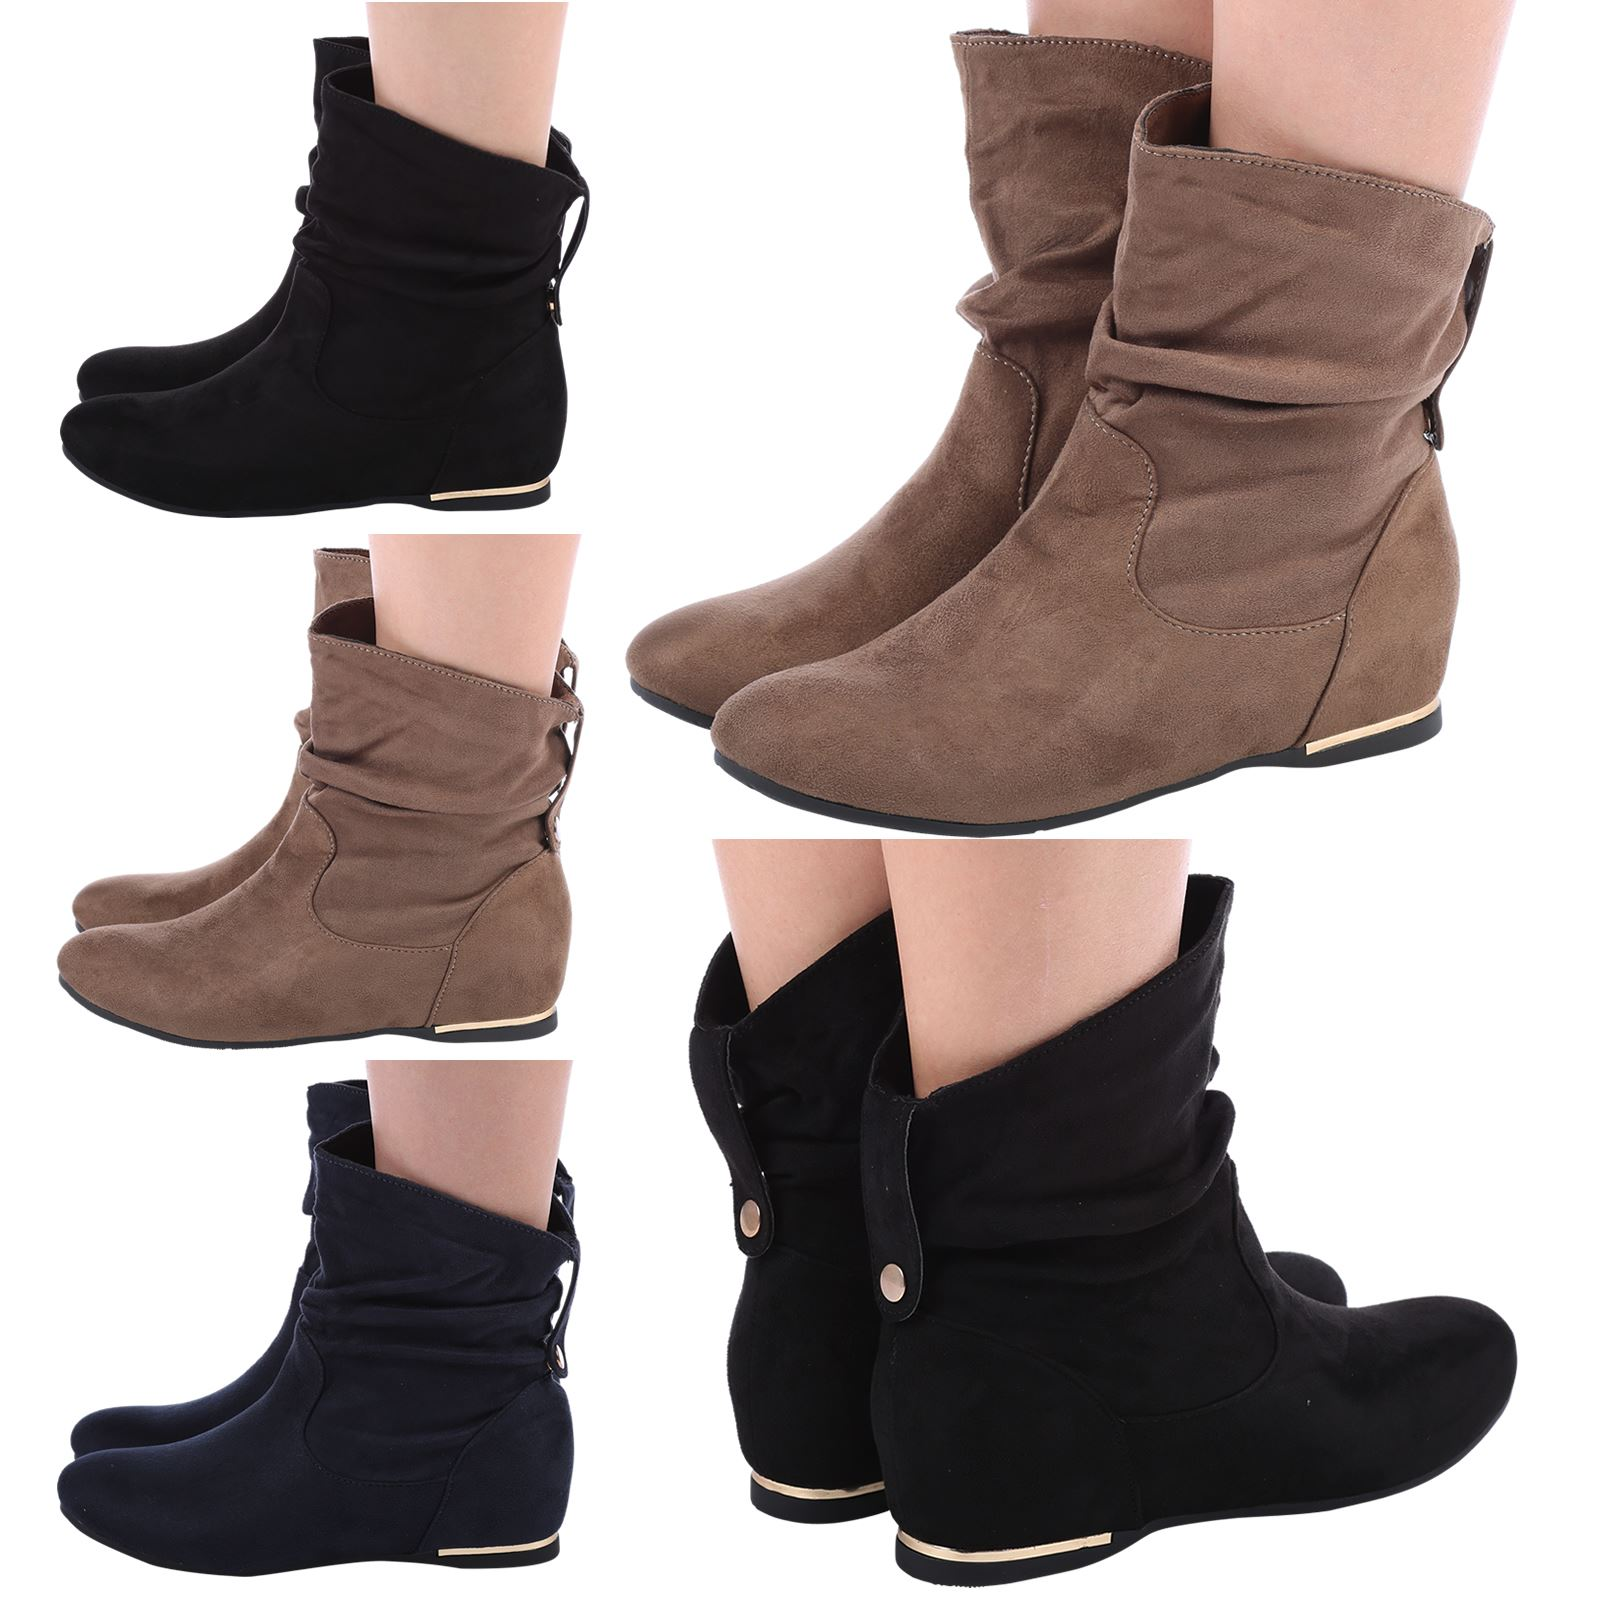 Sep 01,  · Hyponyms [edit Sneaker Wedge Boot Paolo Low Comfortable Designer Bootie Anna Black Fashion Heel New Nappa Ankle Linea Platform Fall Perforated] (promotion of sales) advertising, branding, pricing, sales, promotion.